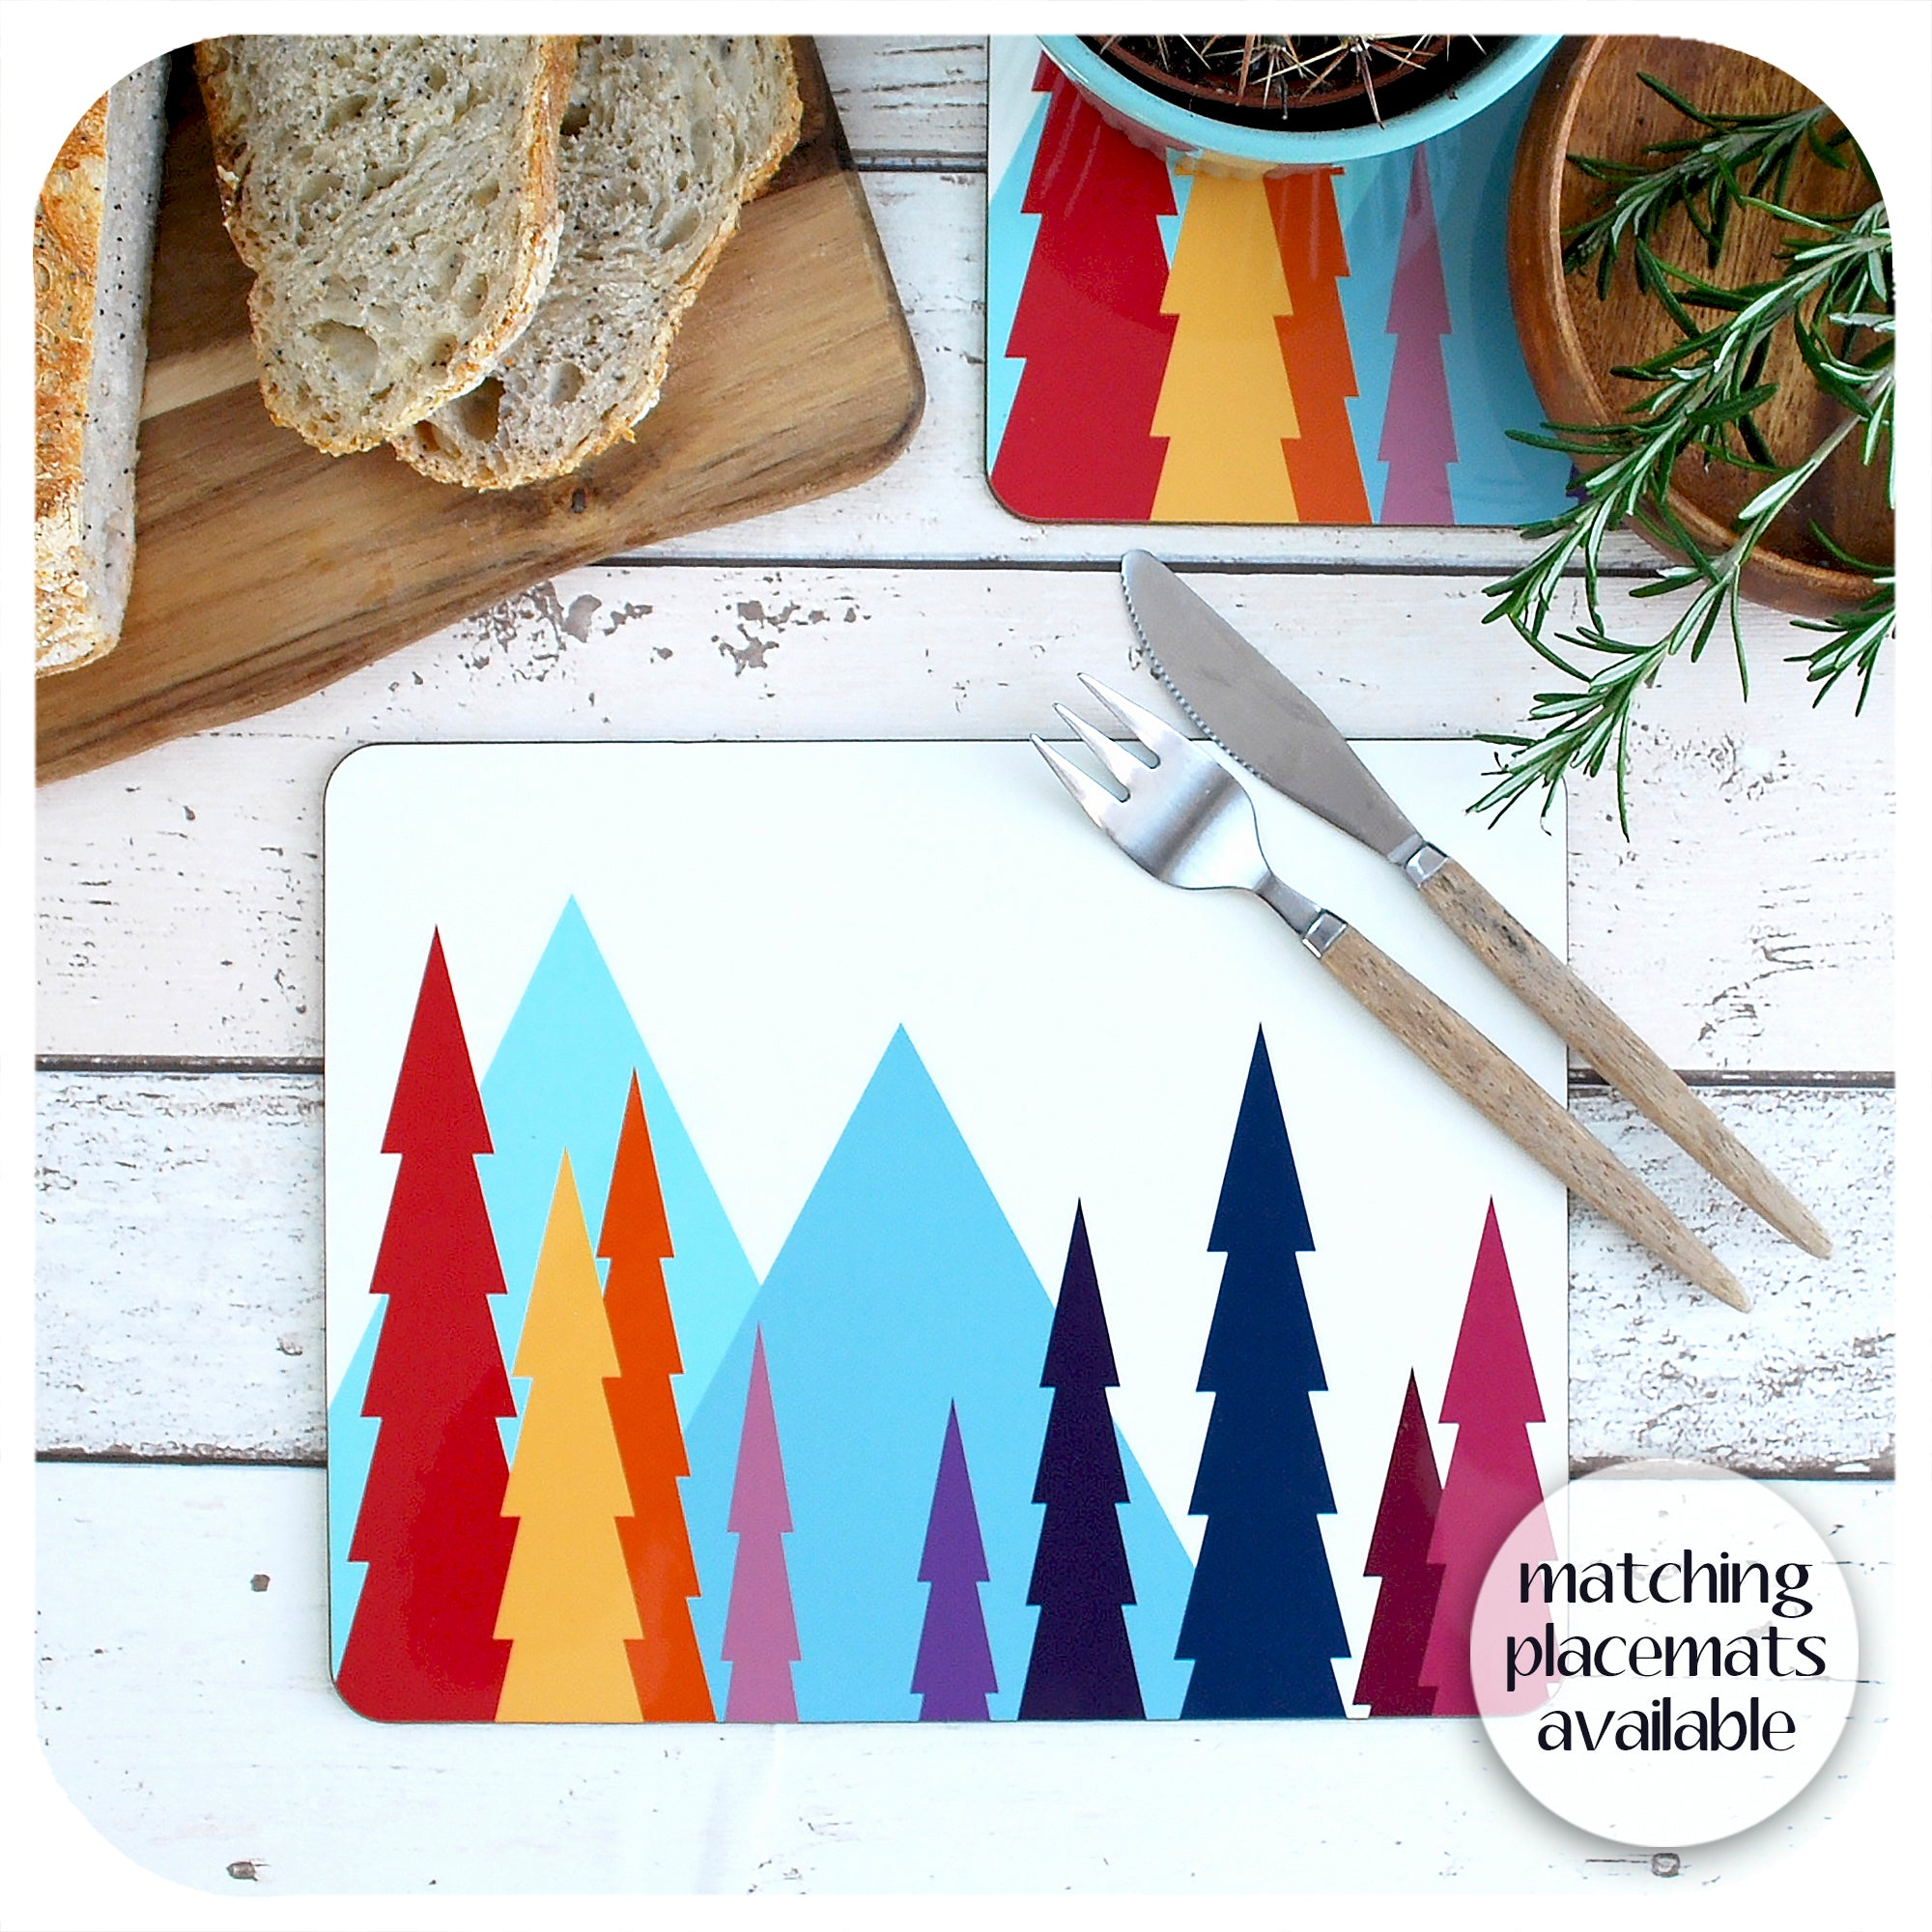 Matching Nordic Trees Placemats available | The Inkabilly Emporium